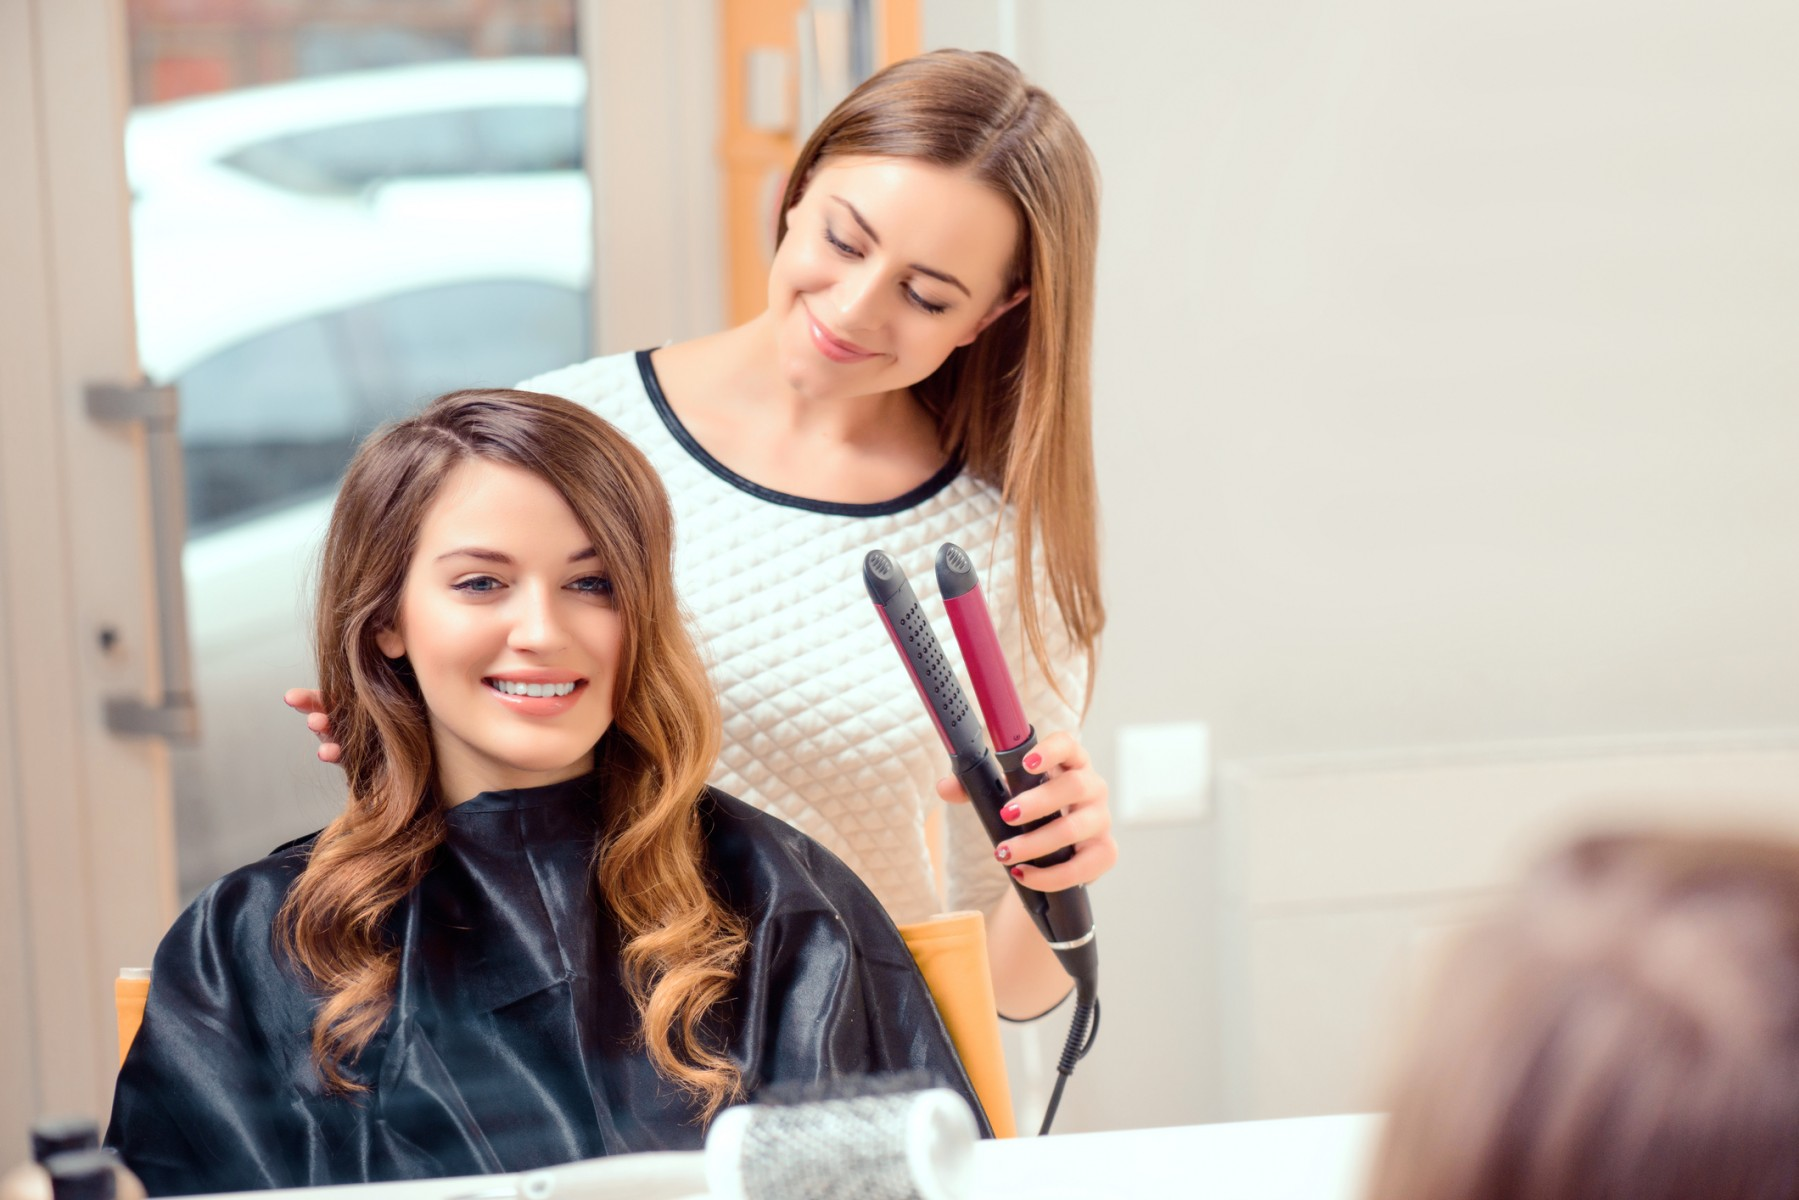 East Melbourne Hair salon for Sale - Victoria